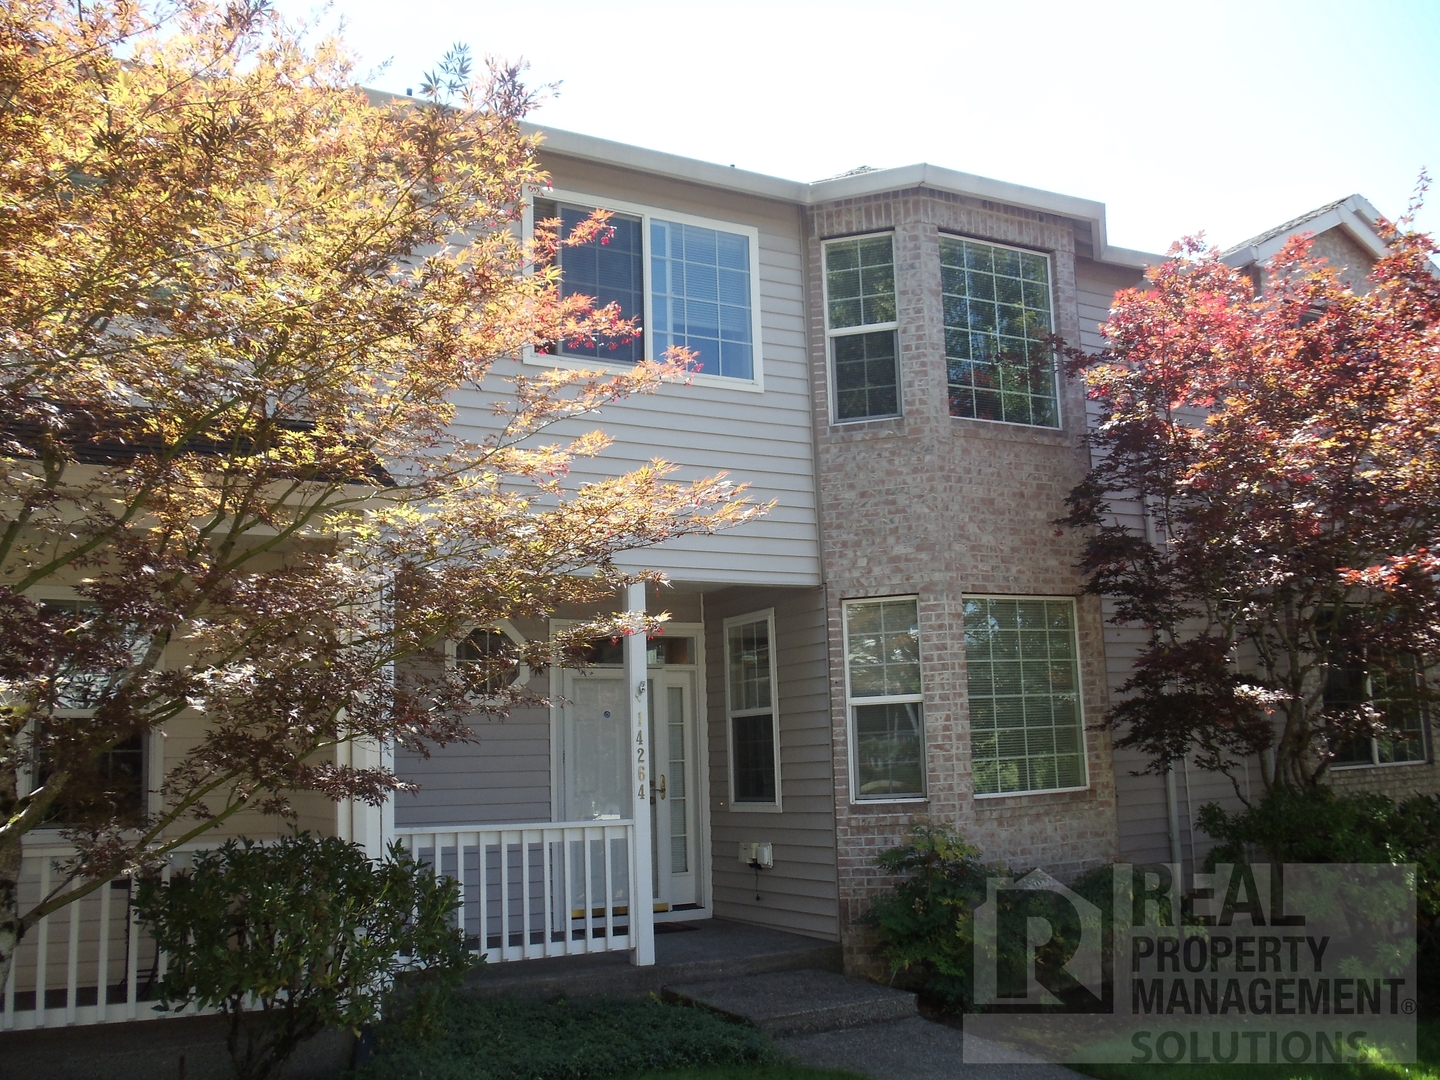 House for Rent in Clackamas